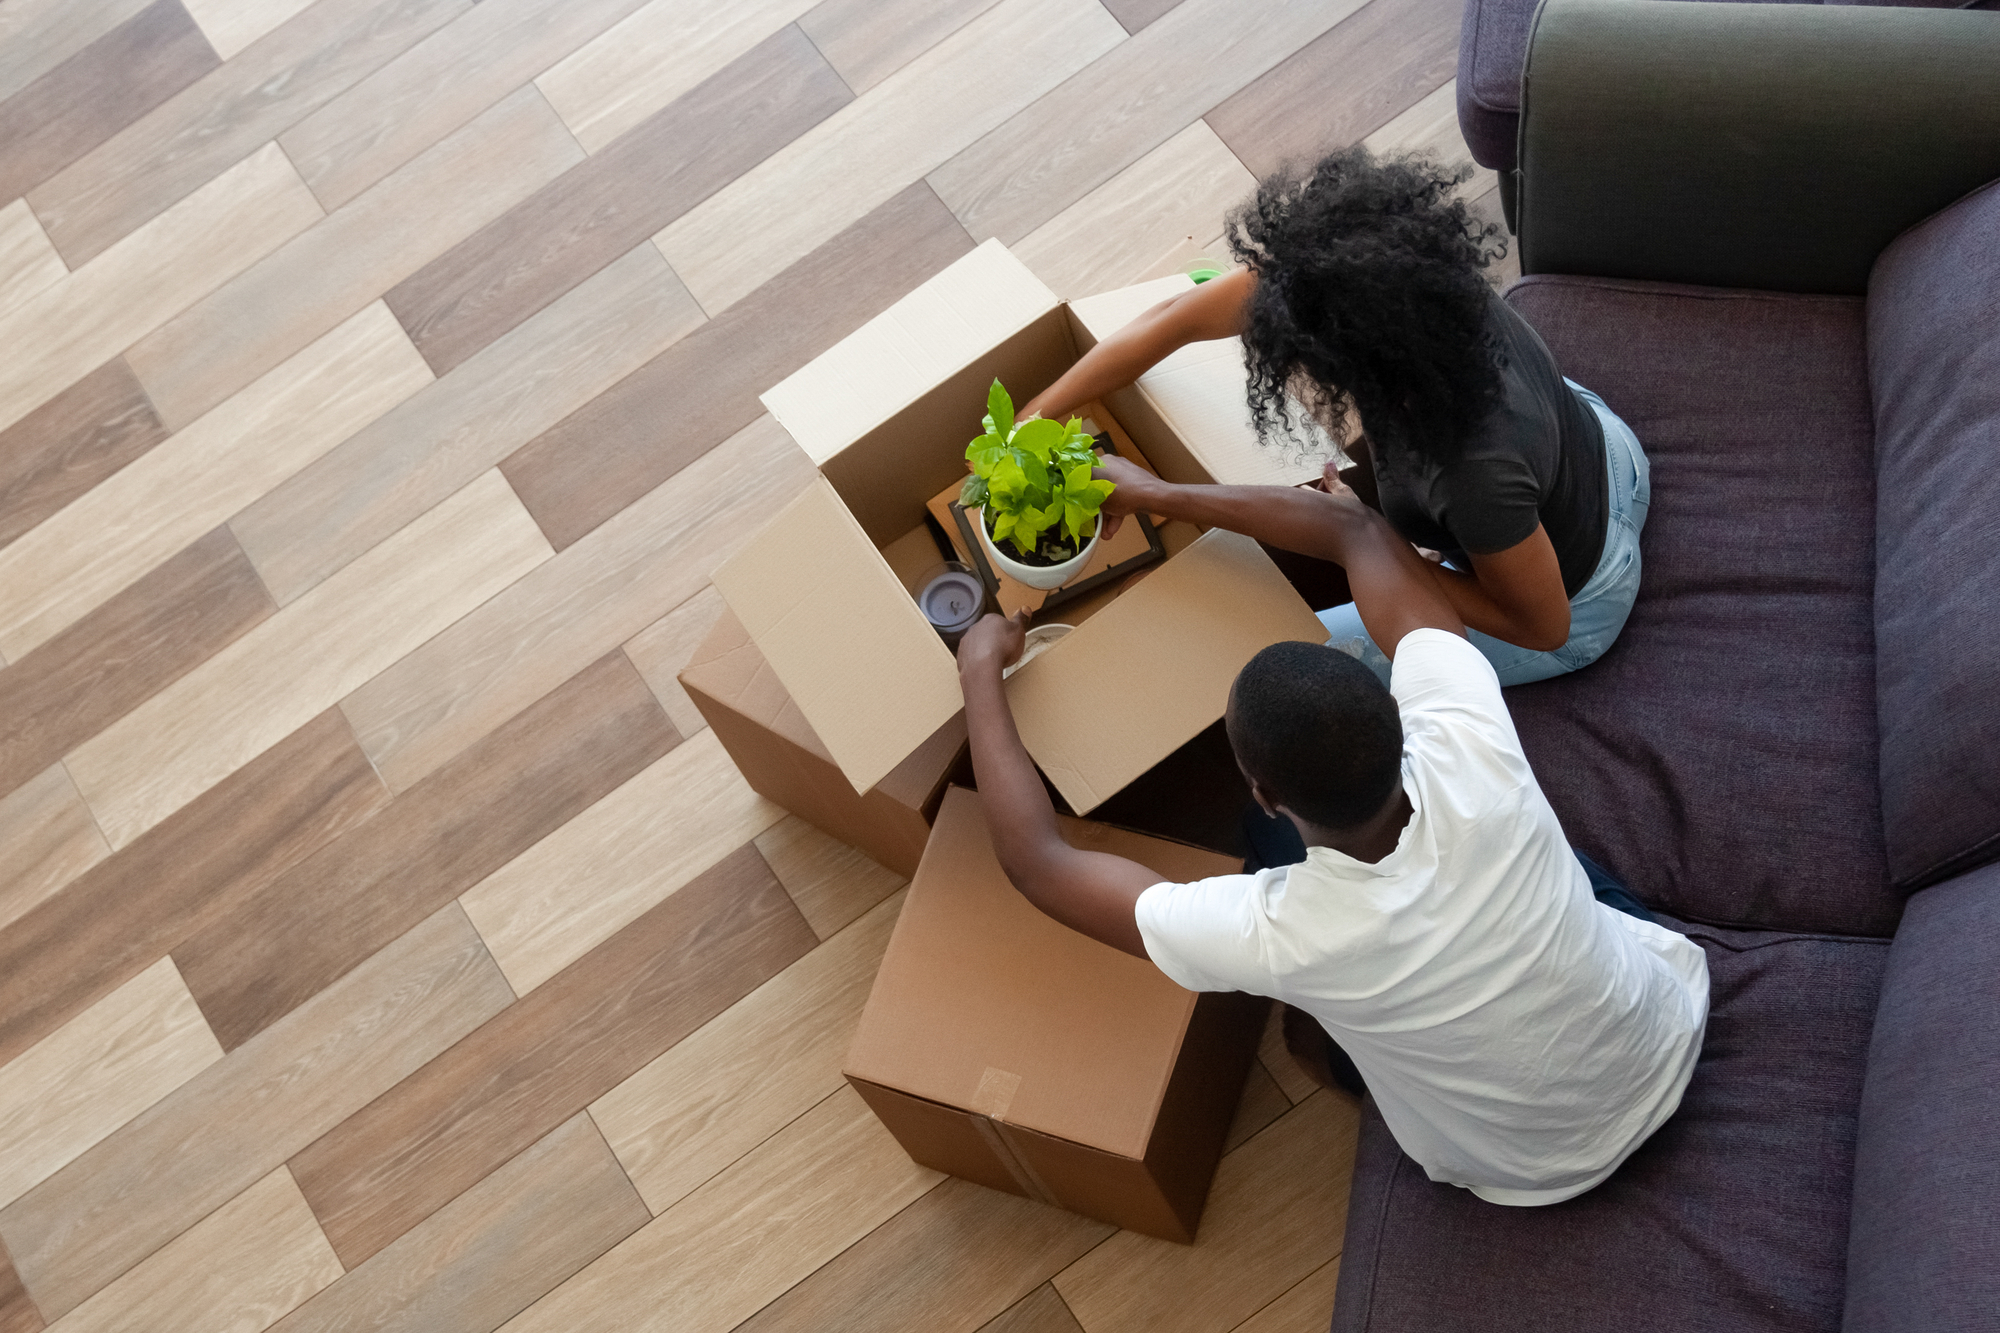 Black couple unpacking cardboard boxes in living room moving in out new home, african tenants renters packing stuff preparing for relocation house renovation